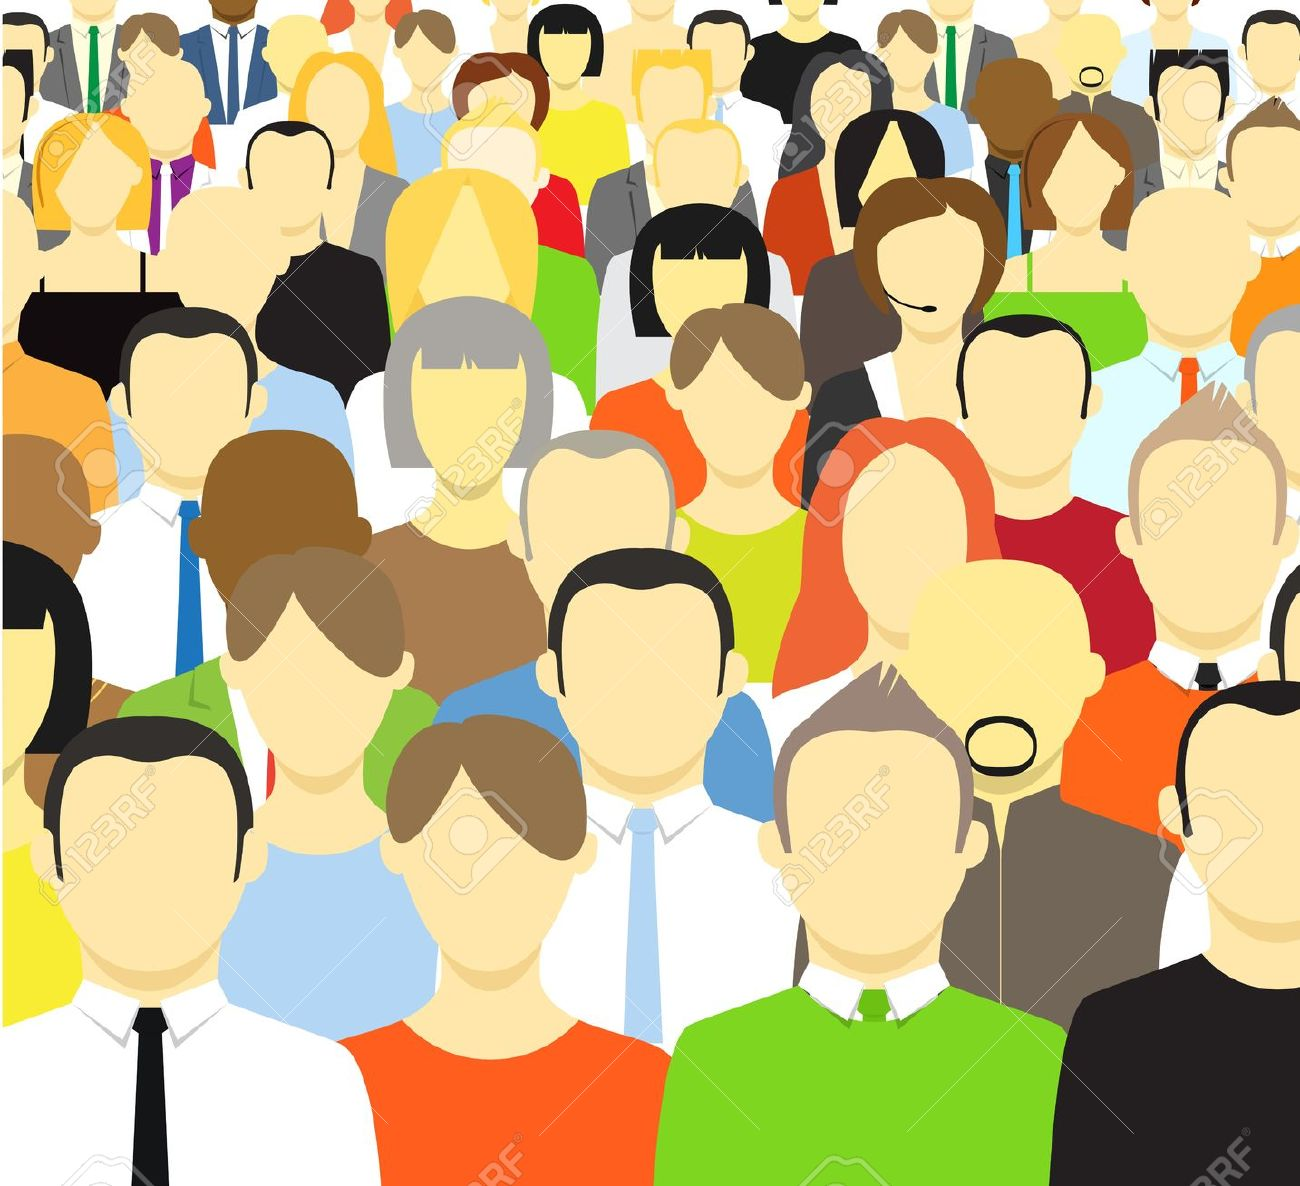 Crowd Clipart | Clipart Panda - Free Clipart Images